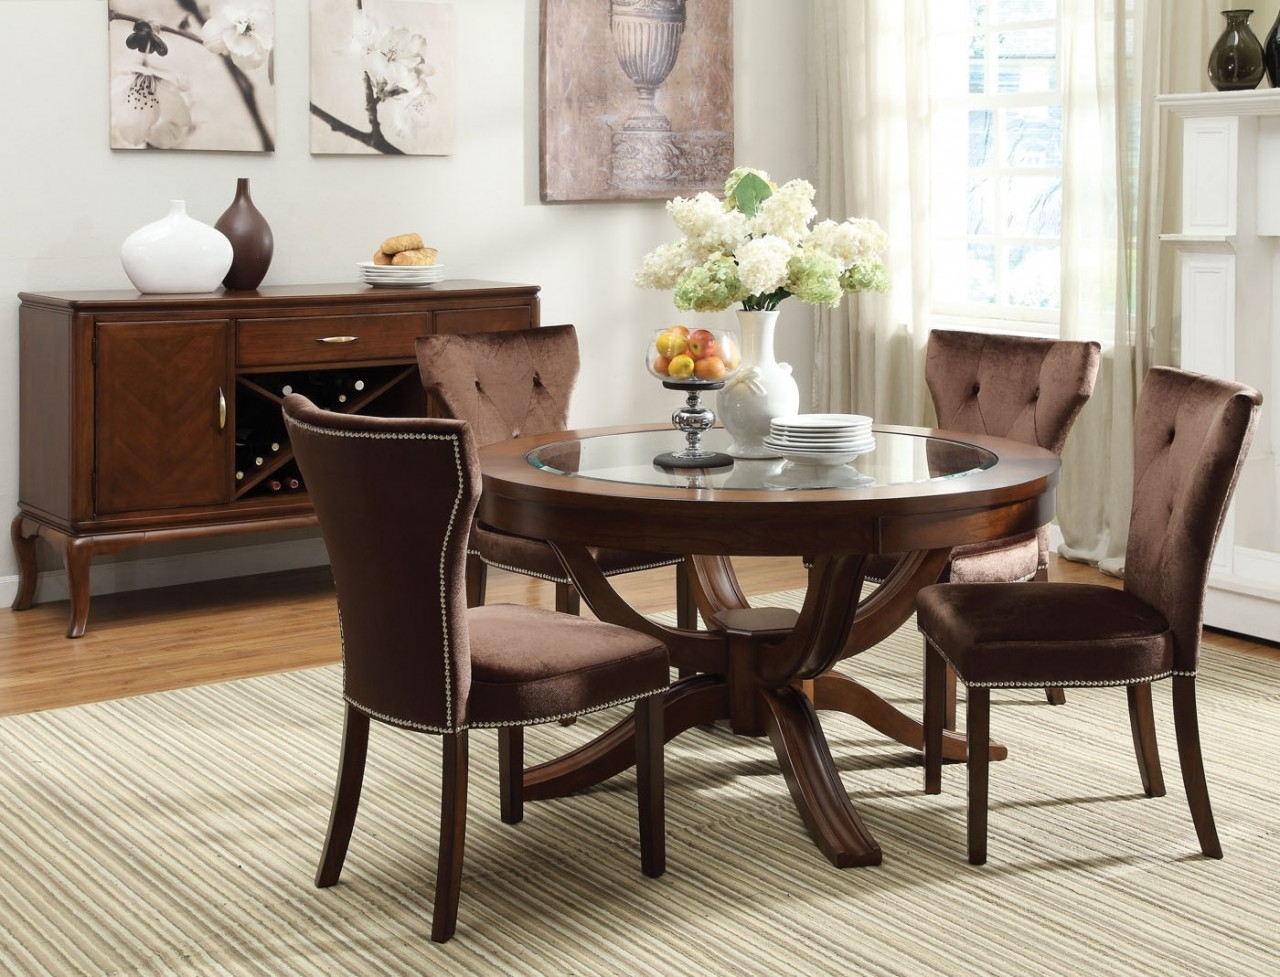 Retro Glass Dining Tables And Chairs Regarding Popular Round Dining Table Set For 6 – Castrophotos (View 20 of 25)